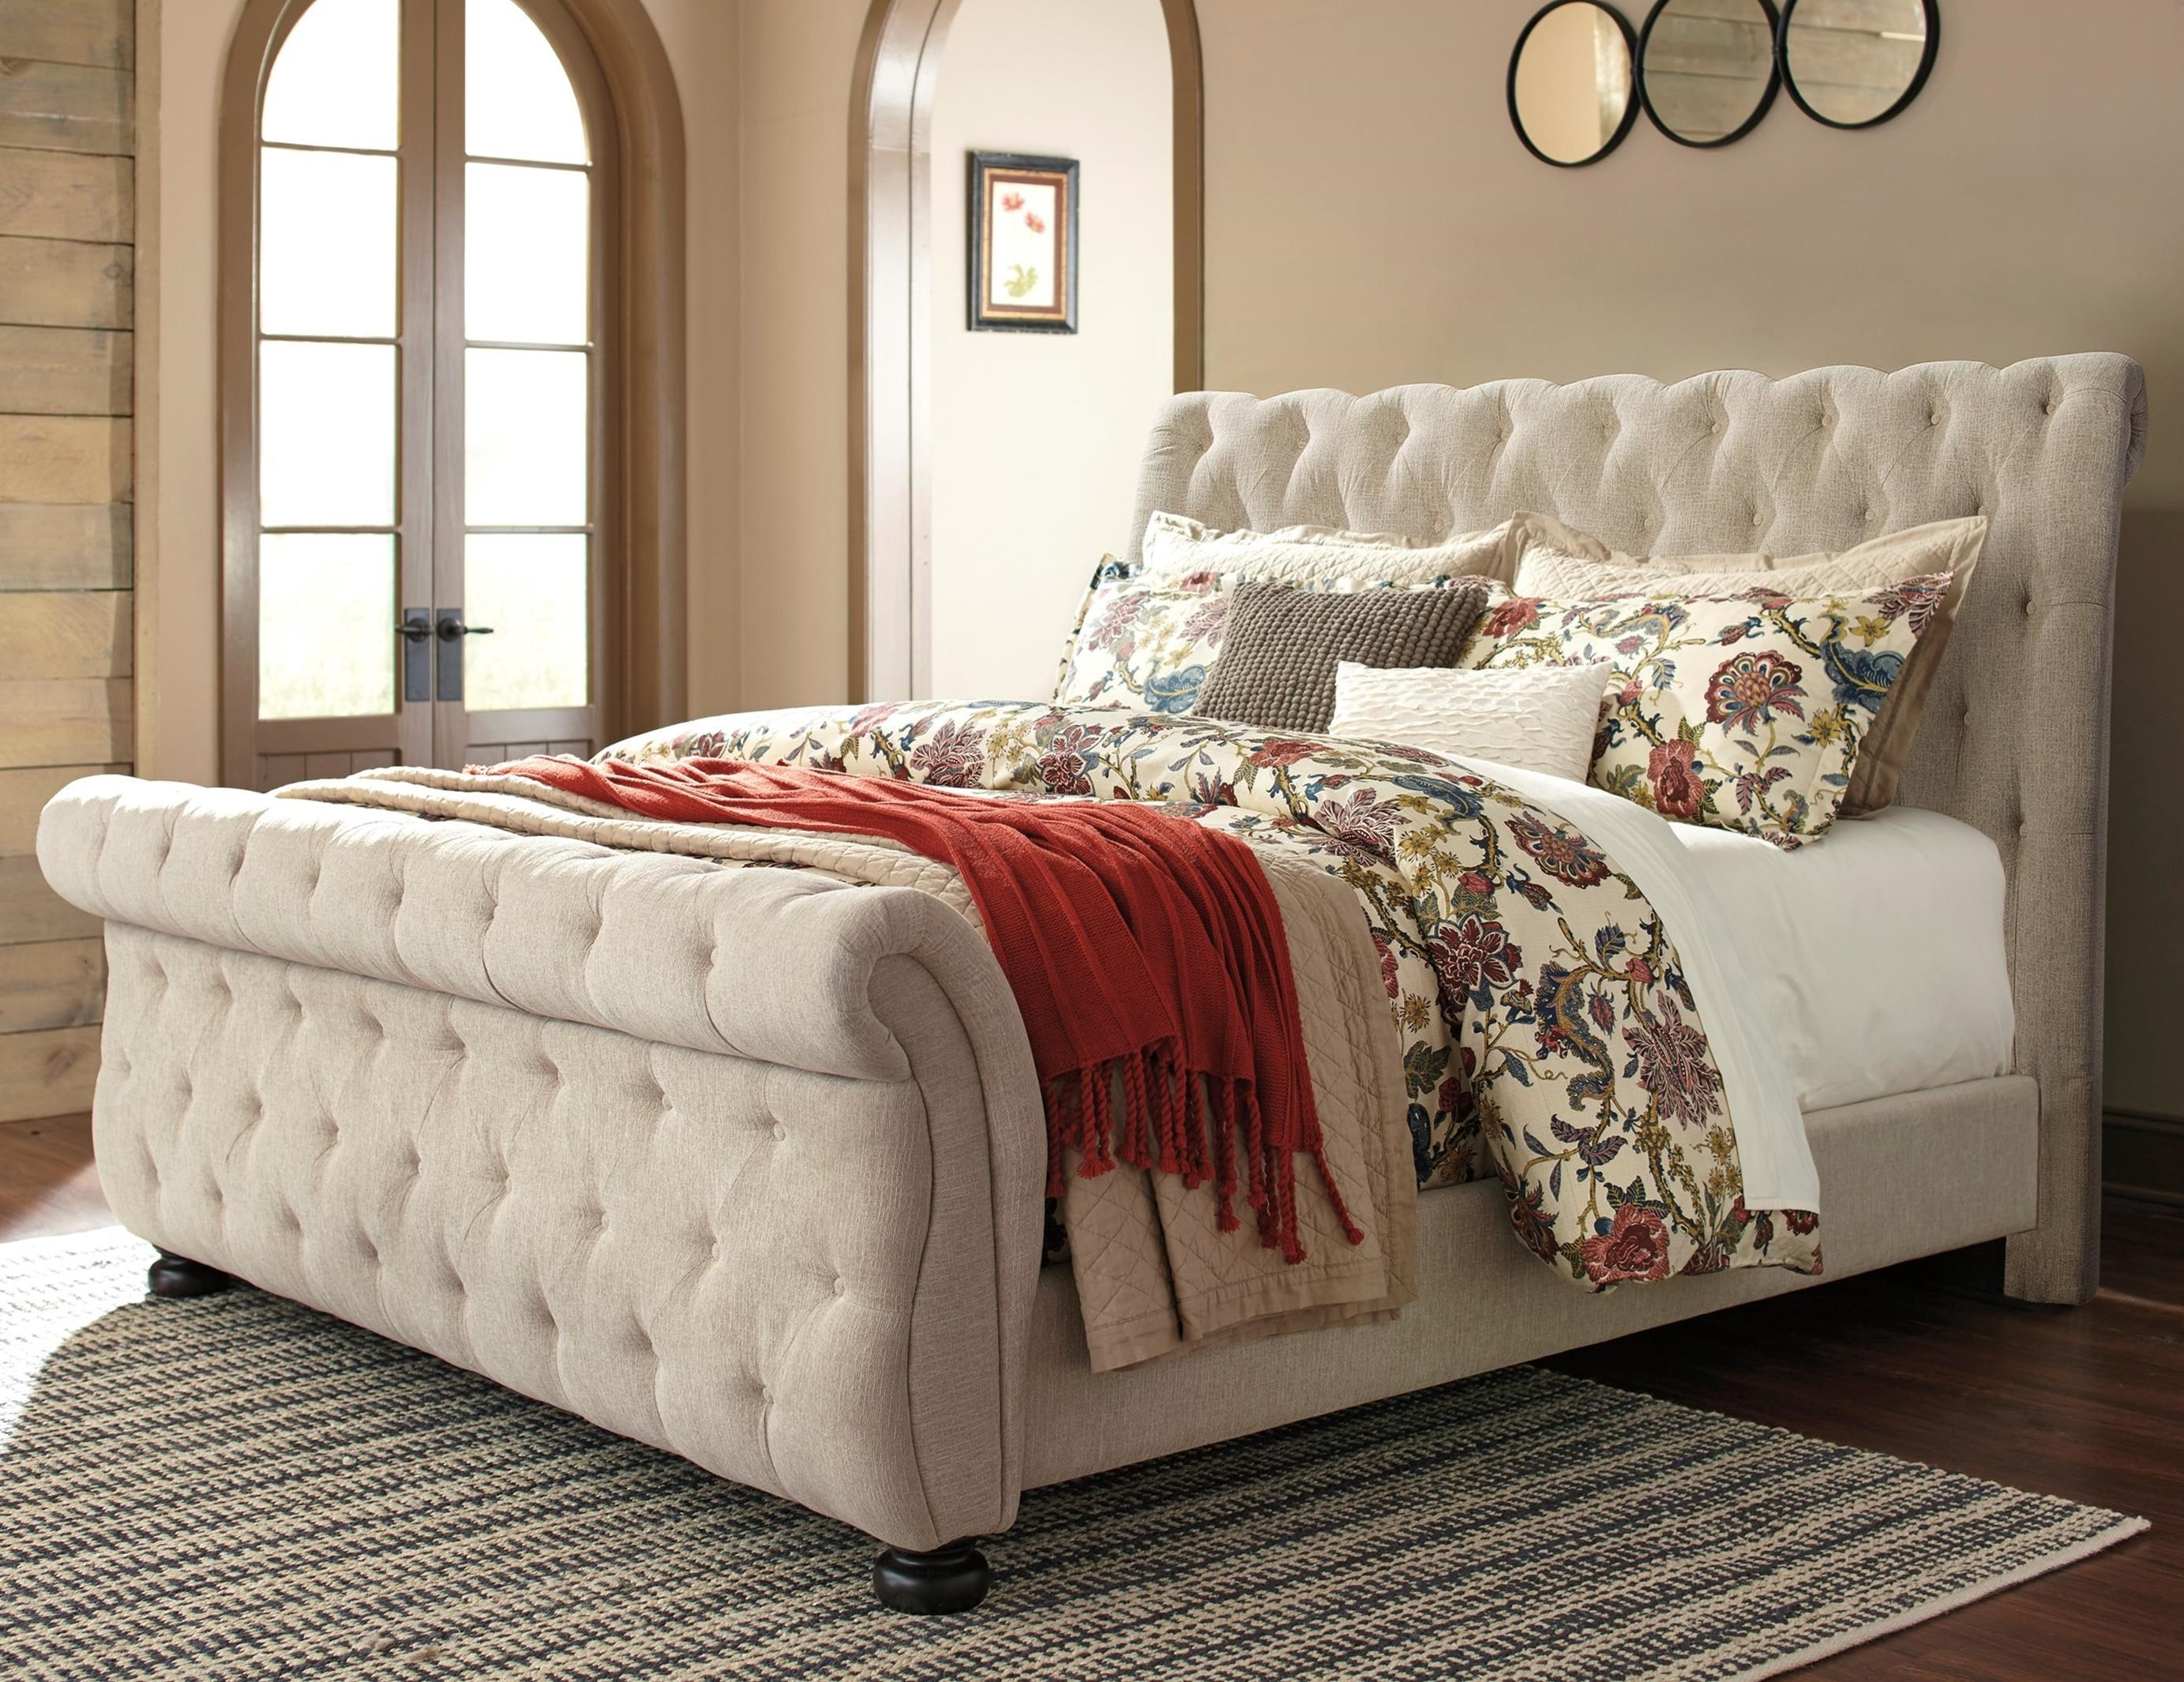 Willenburg King Upholstered Sleigh Bed by Signature Design by Ashley at Zak's Warehouse Clearance Center